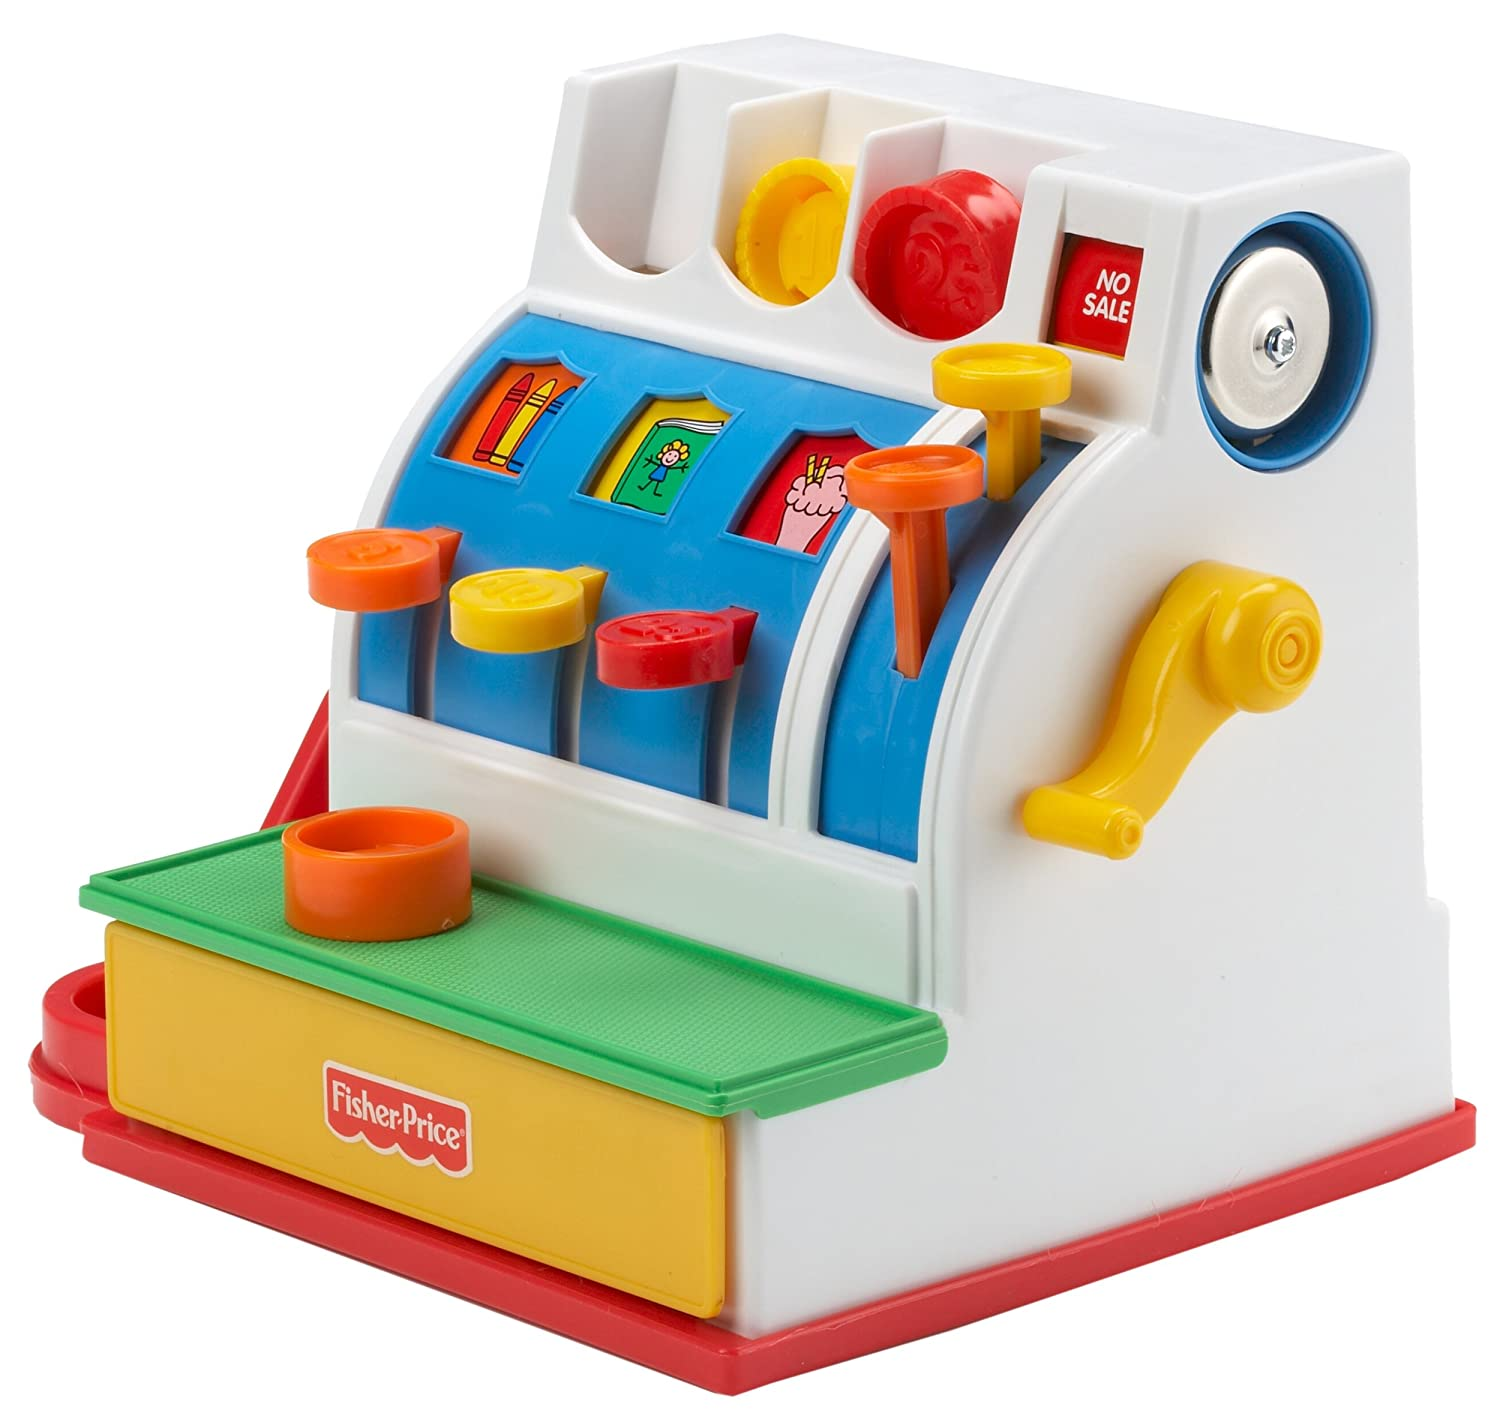 39 retro 39 fisher price cash register sold by avides and fulfilled by amazon hotukdeals. Black Bedroom Furniture Sets. Home Design Ideas